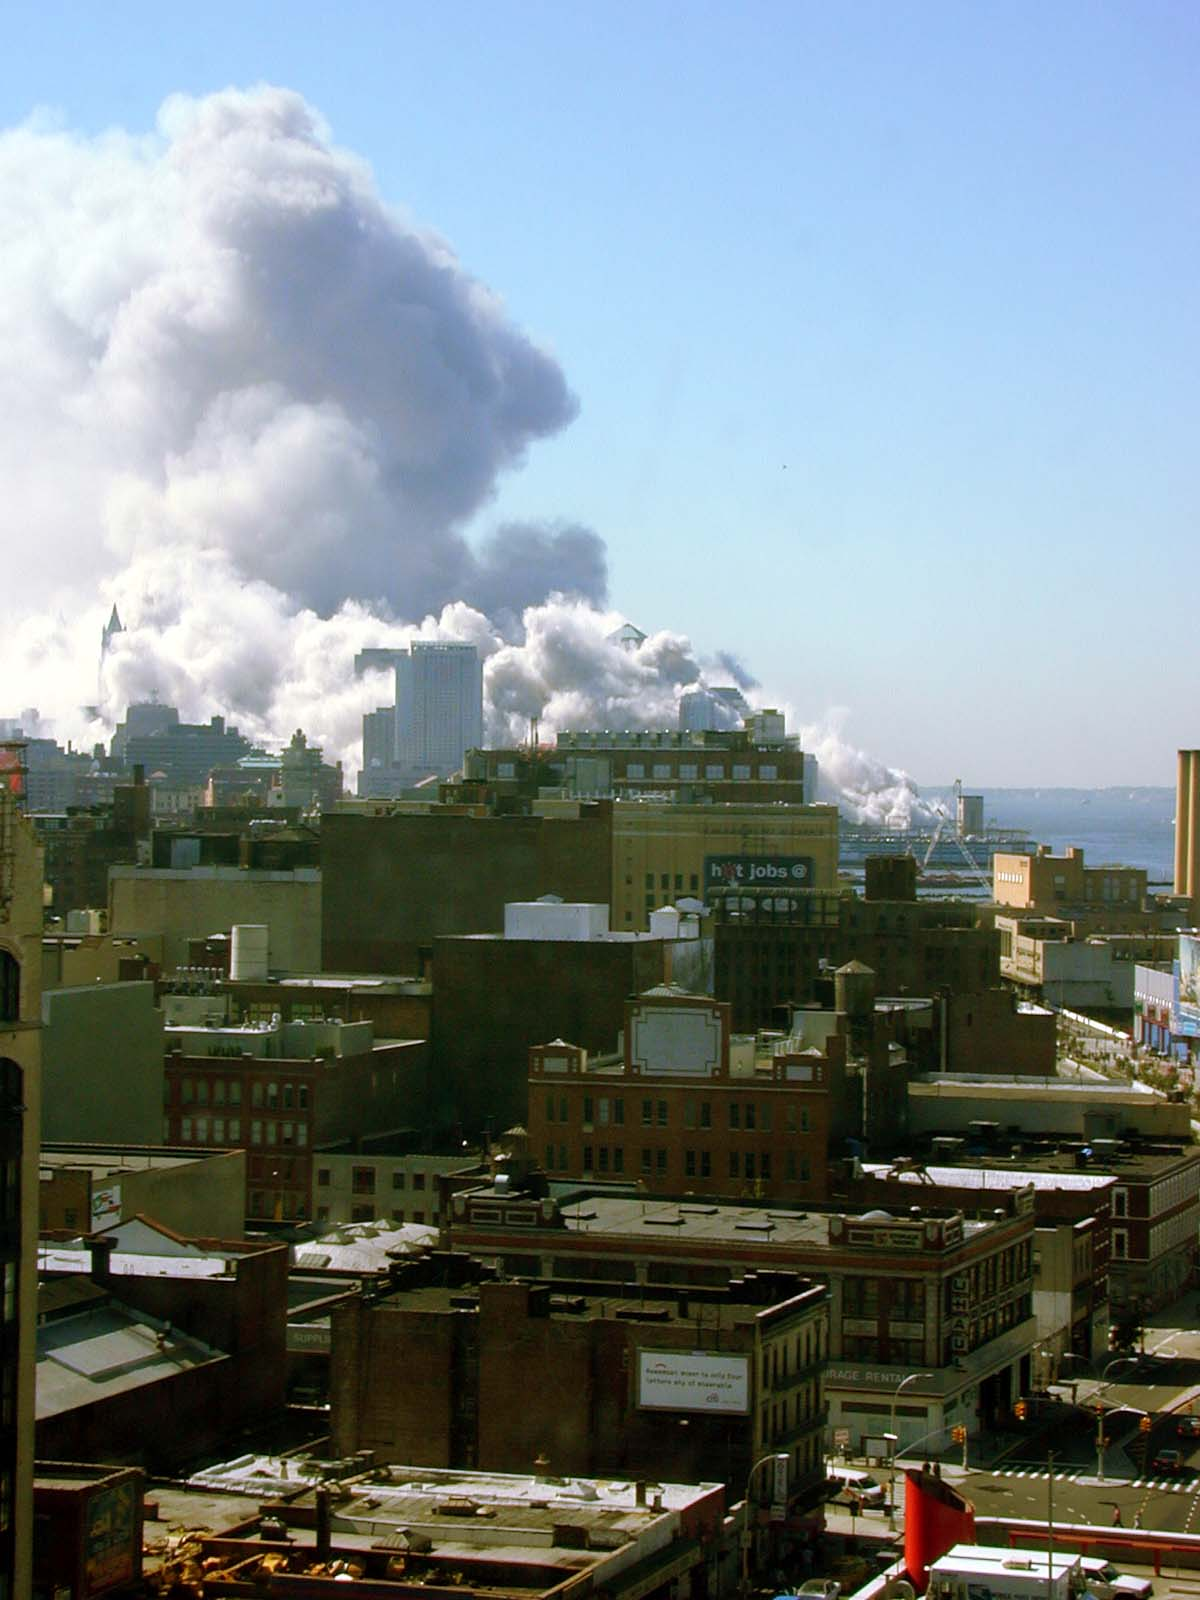 026 - 10.30AM - both towers gone, a plume a smoke